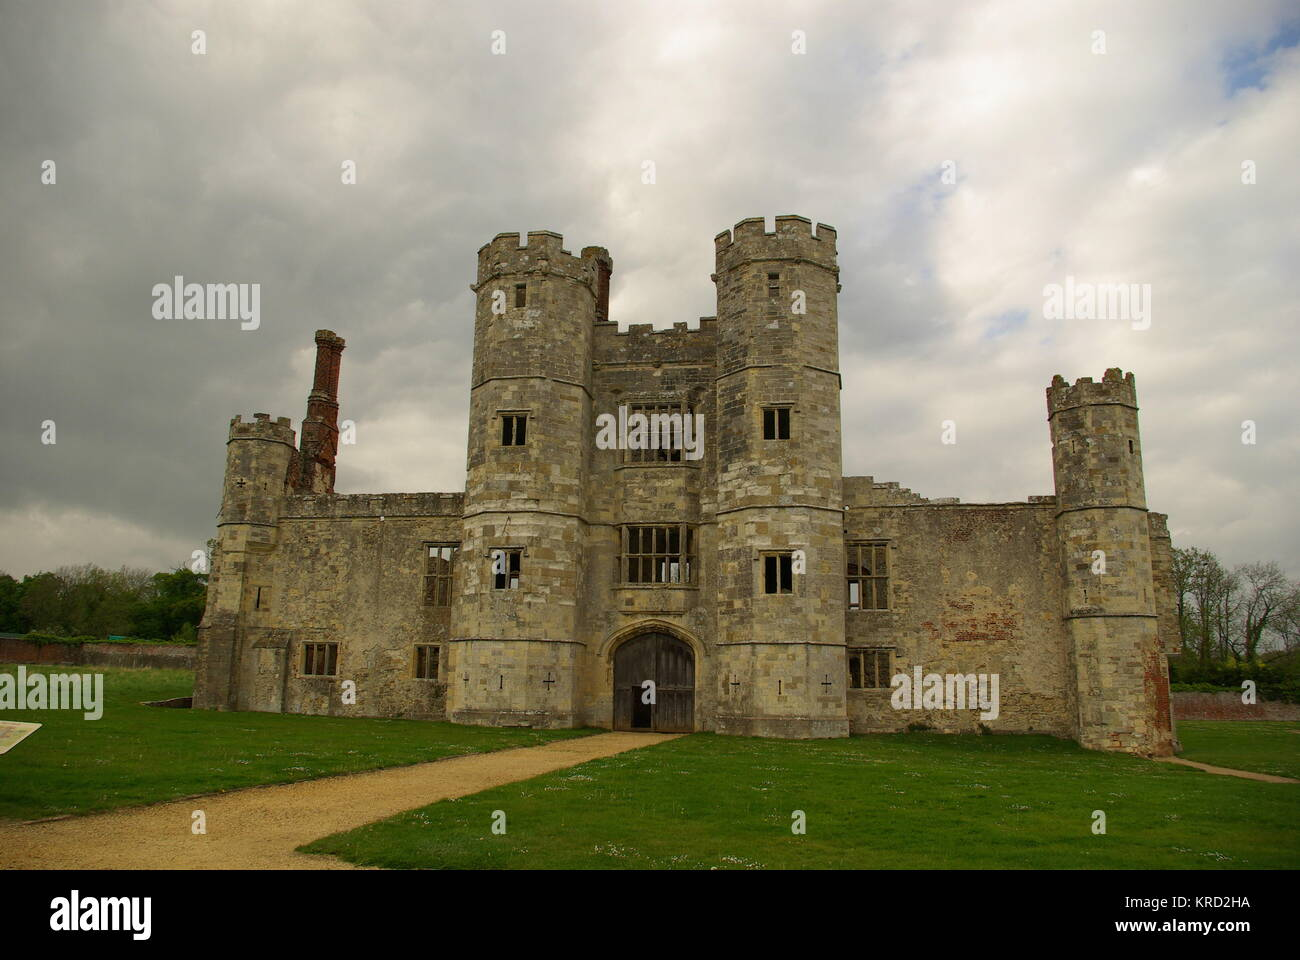 View of the gatehouse of Titchfield Abbey, near Fareham, Hampshire.  The abbey was founded in 1222 for Premonstratensian - Stock Image